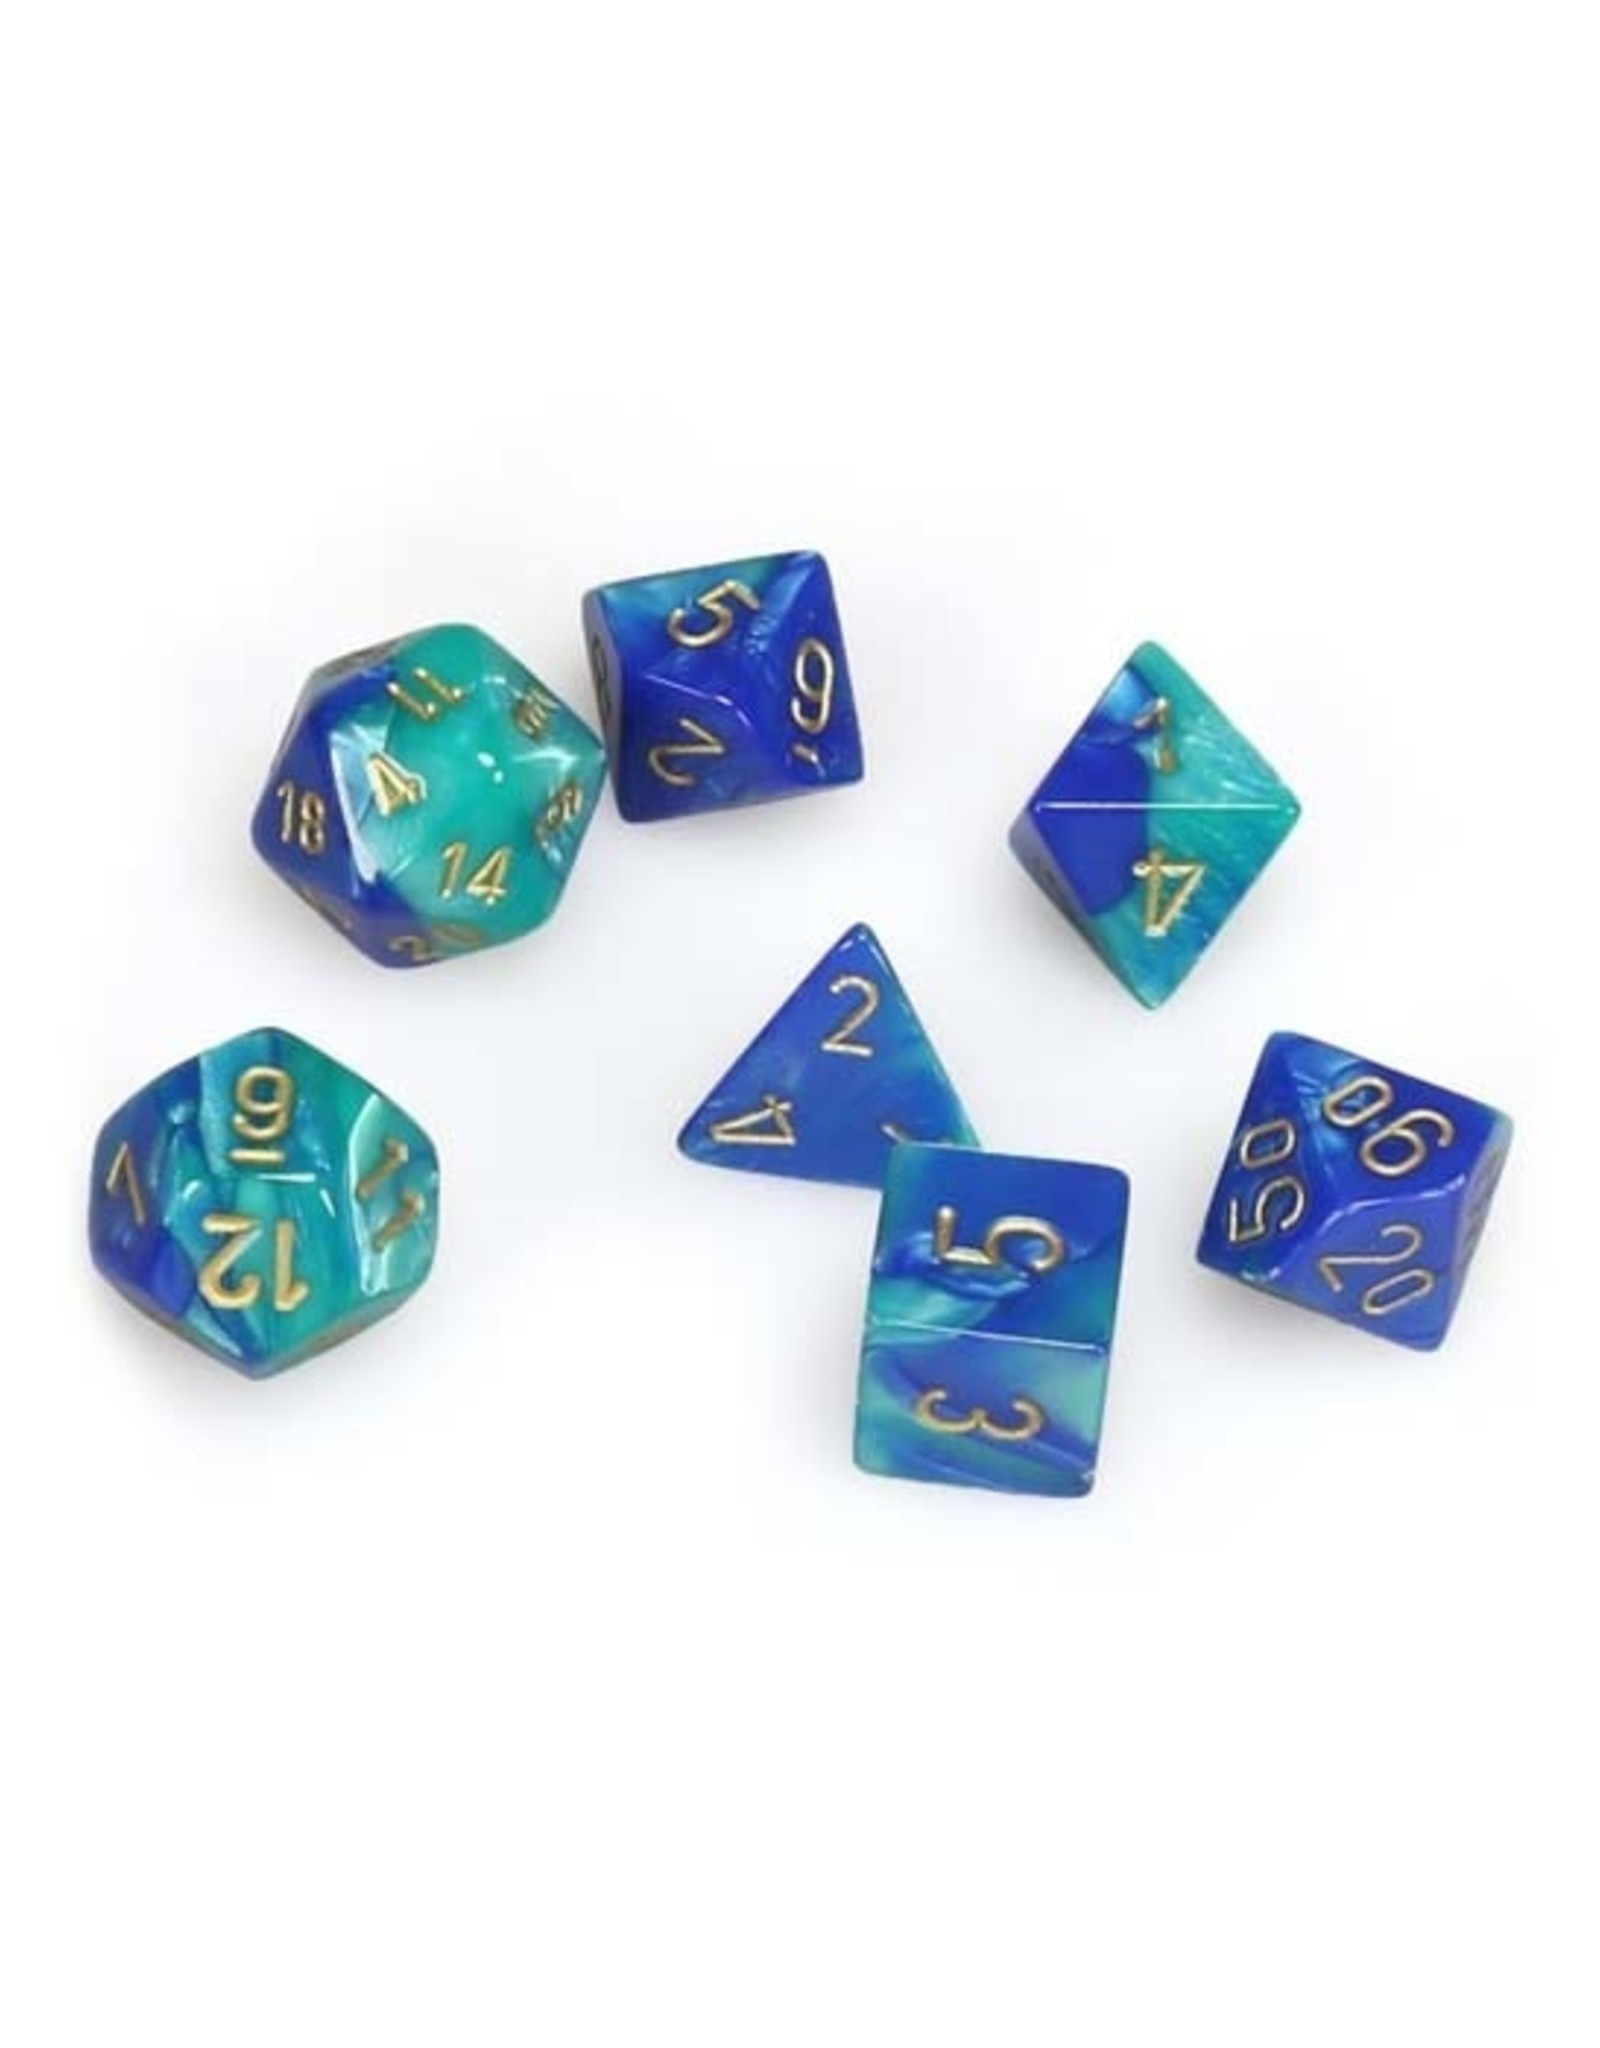 Chessex Chessex: Poly 7 Set - Gemini - Blue-Teal w/ Gold